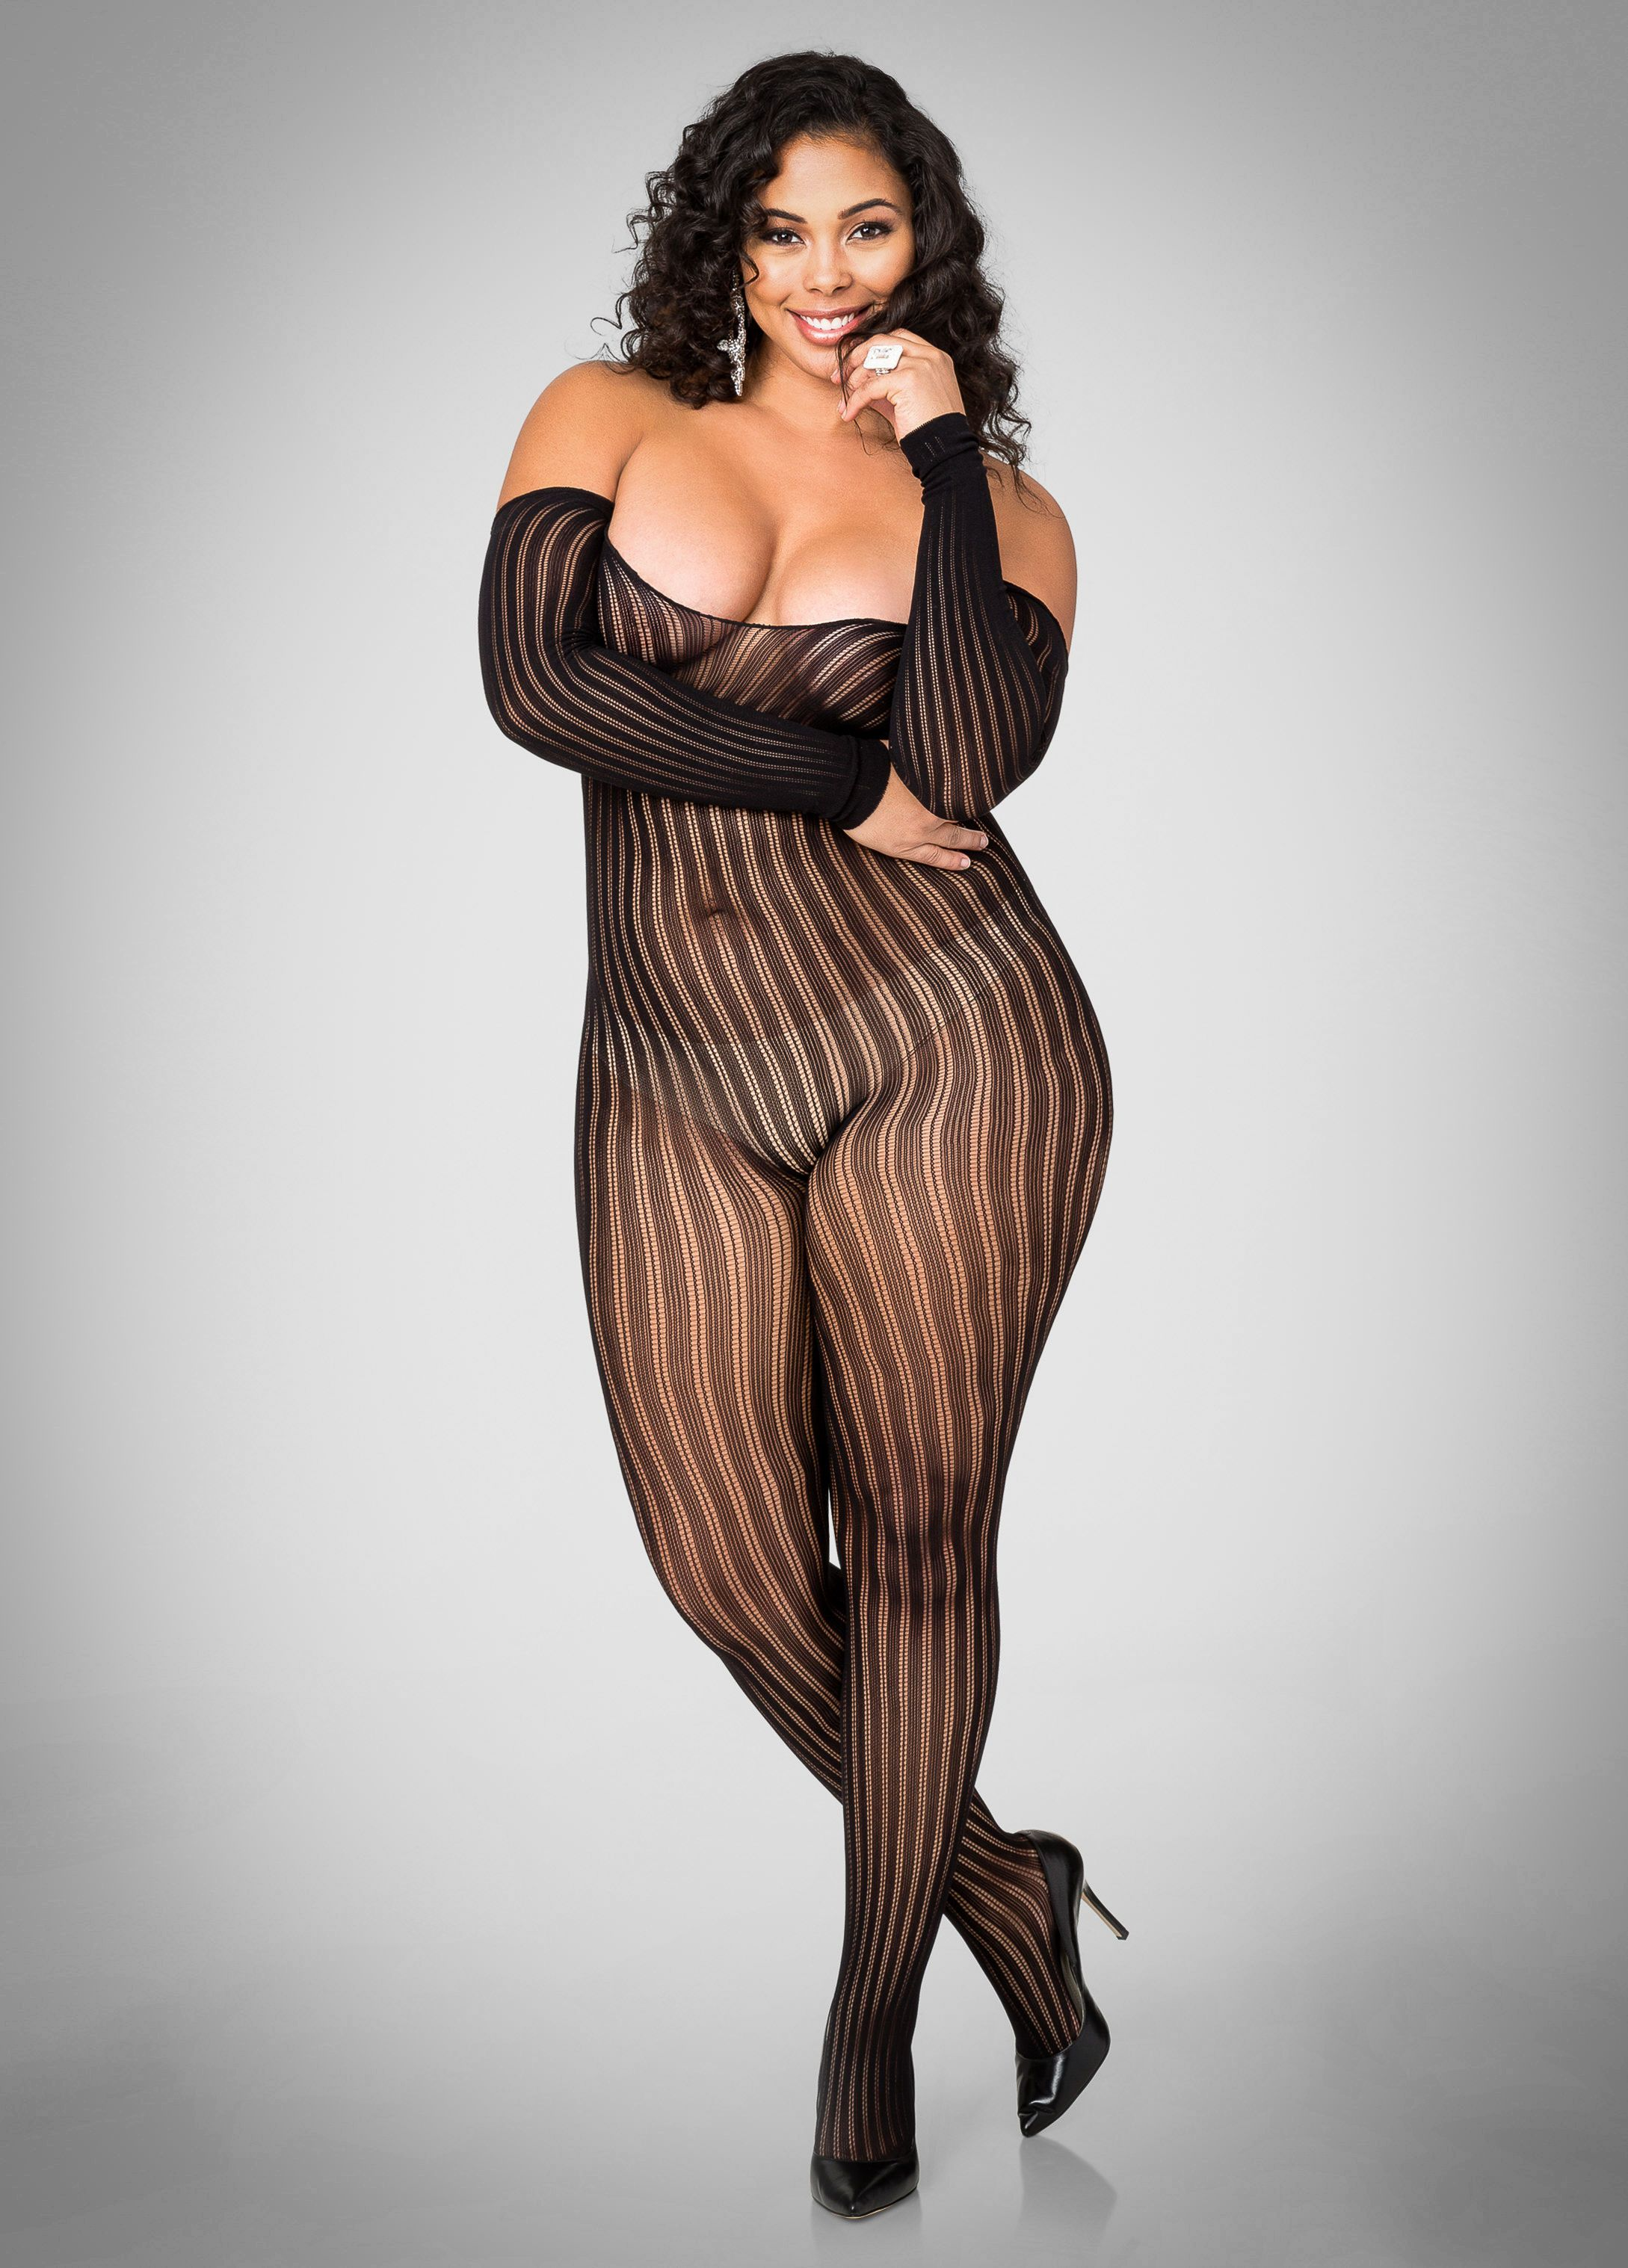 Plus size model Tabria Majors | Tabria Majors